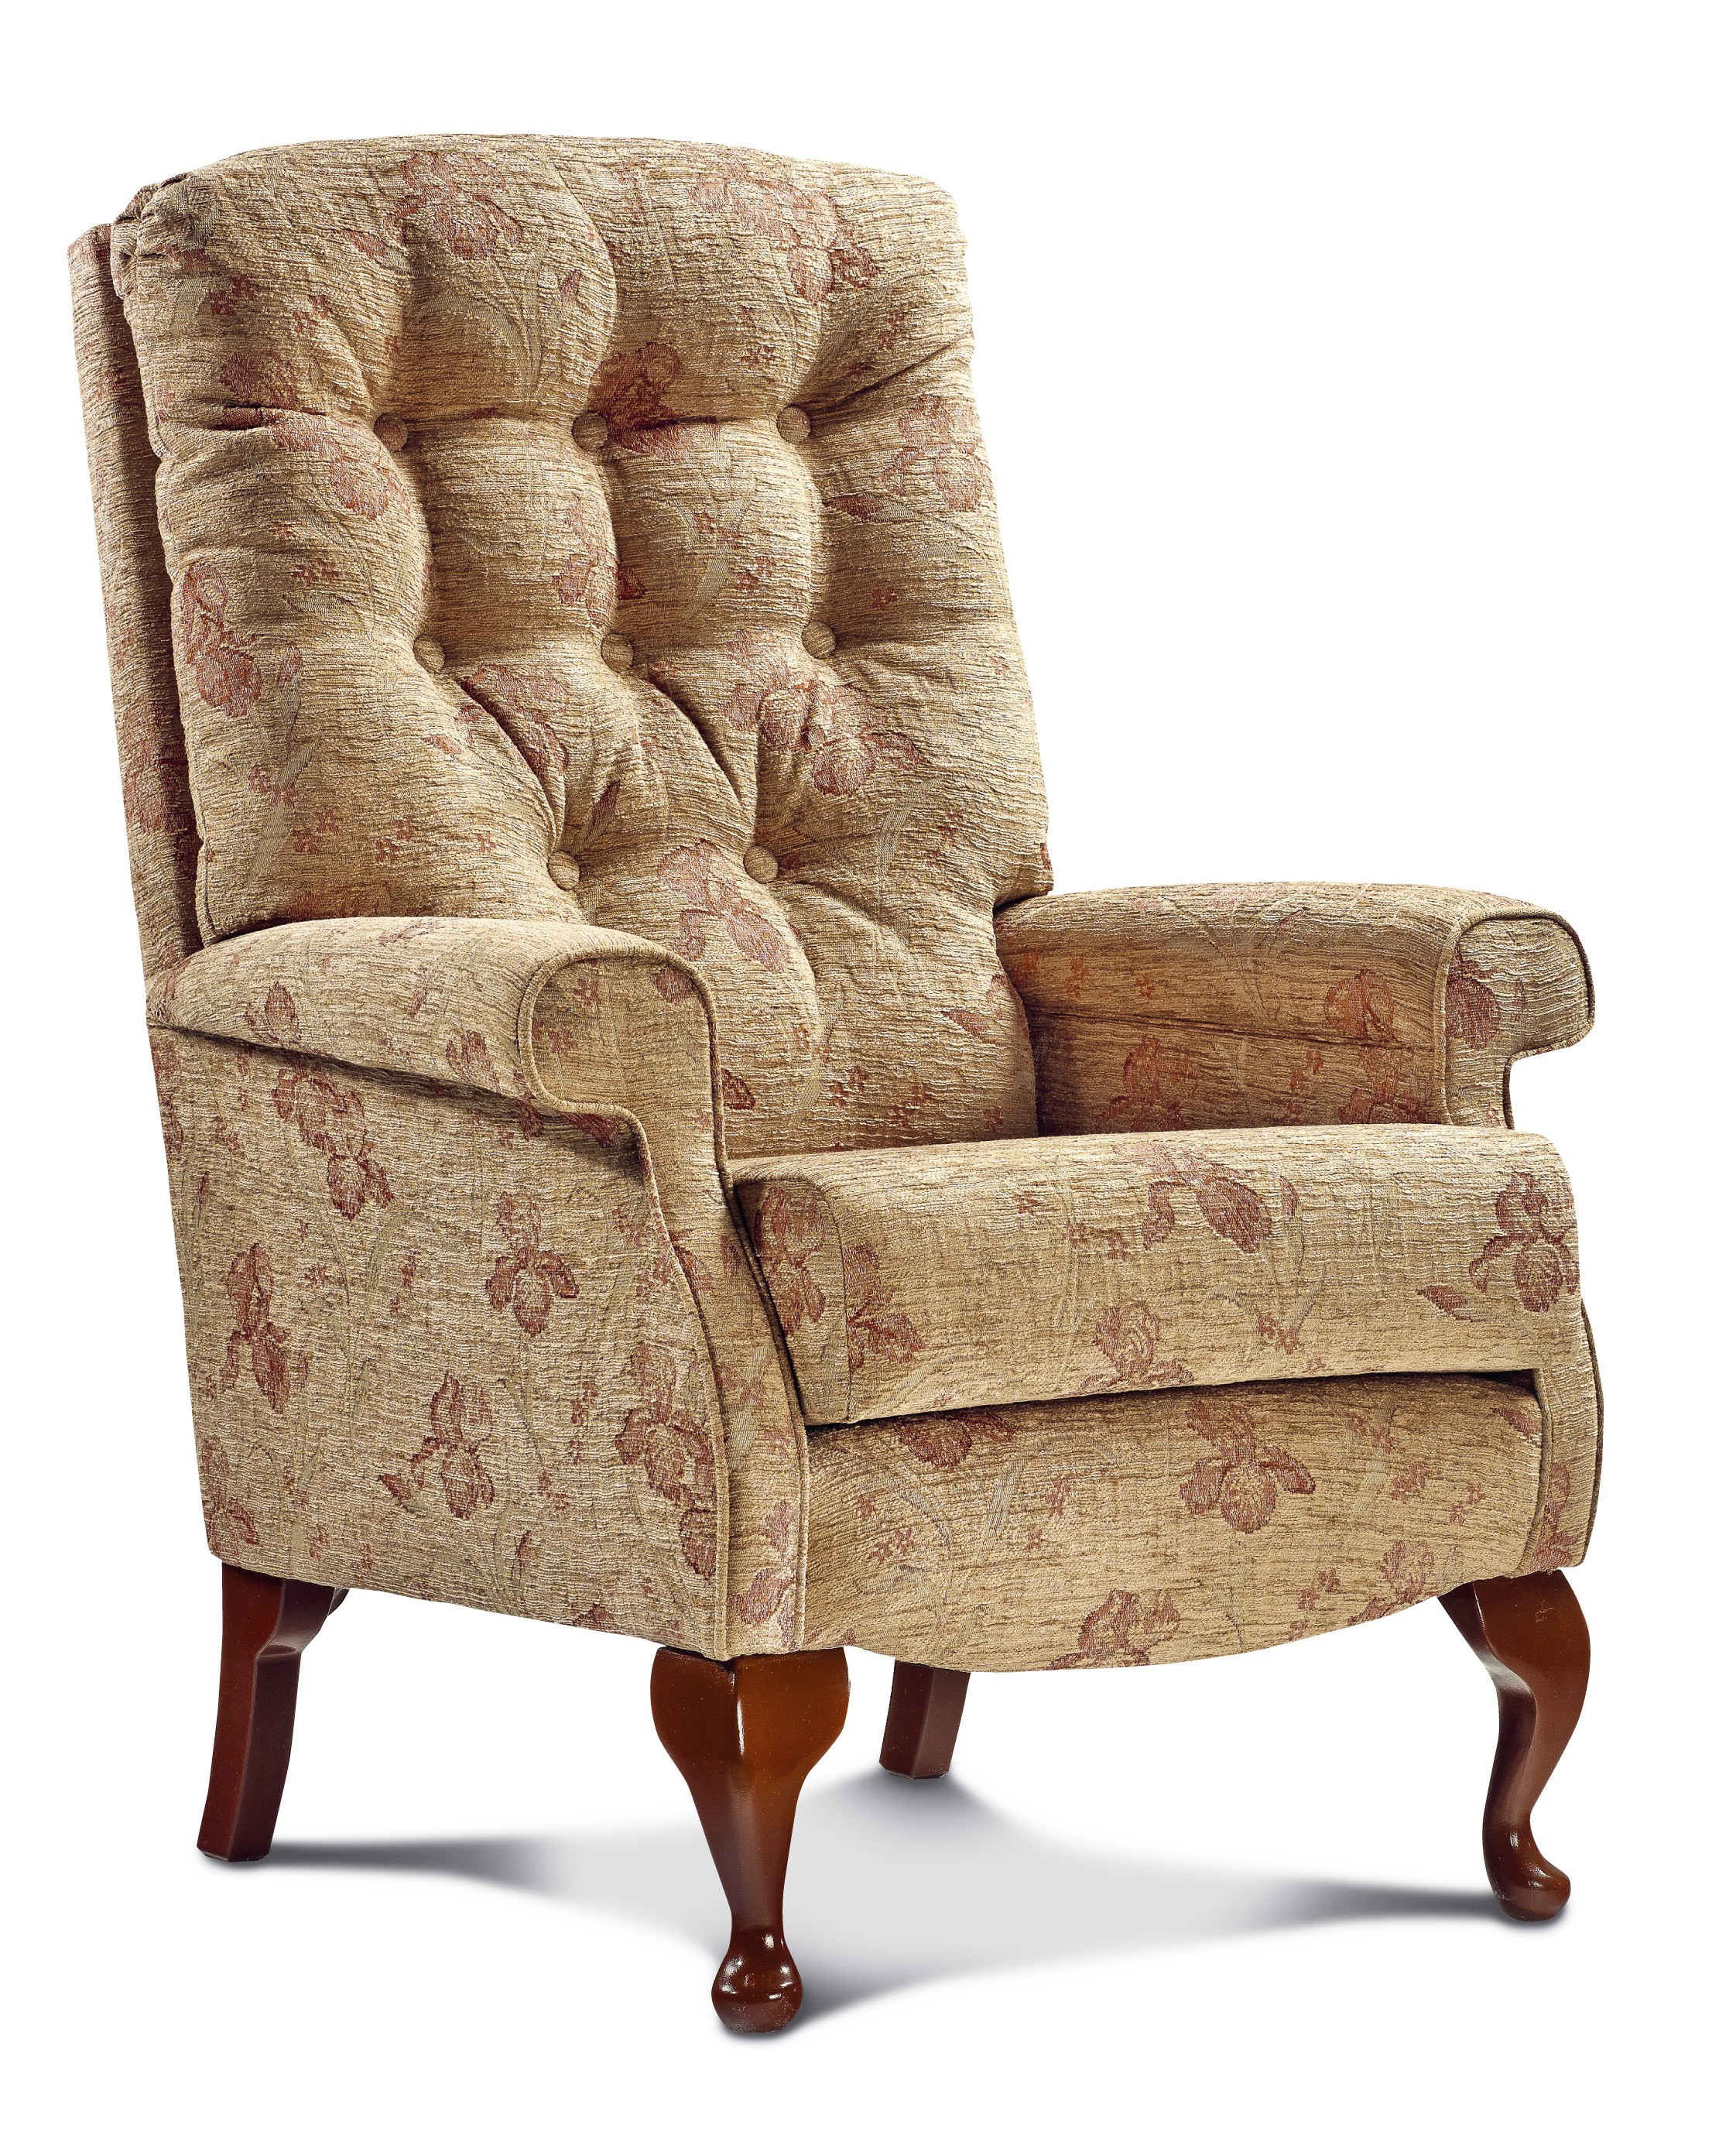 Shildon Fireside Chair